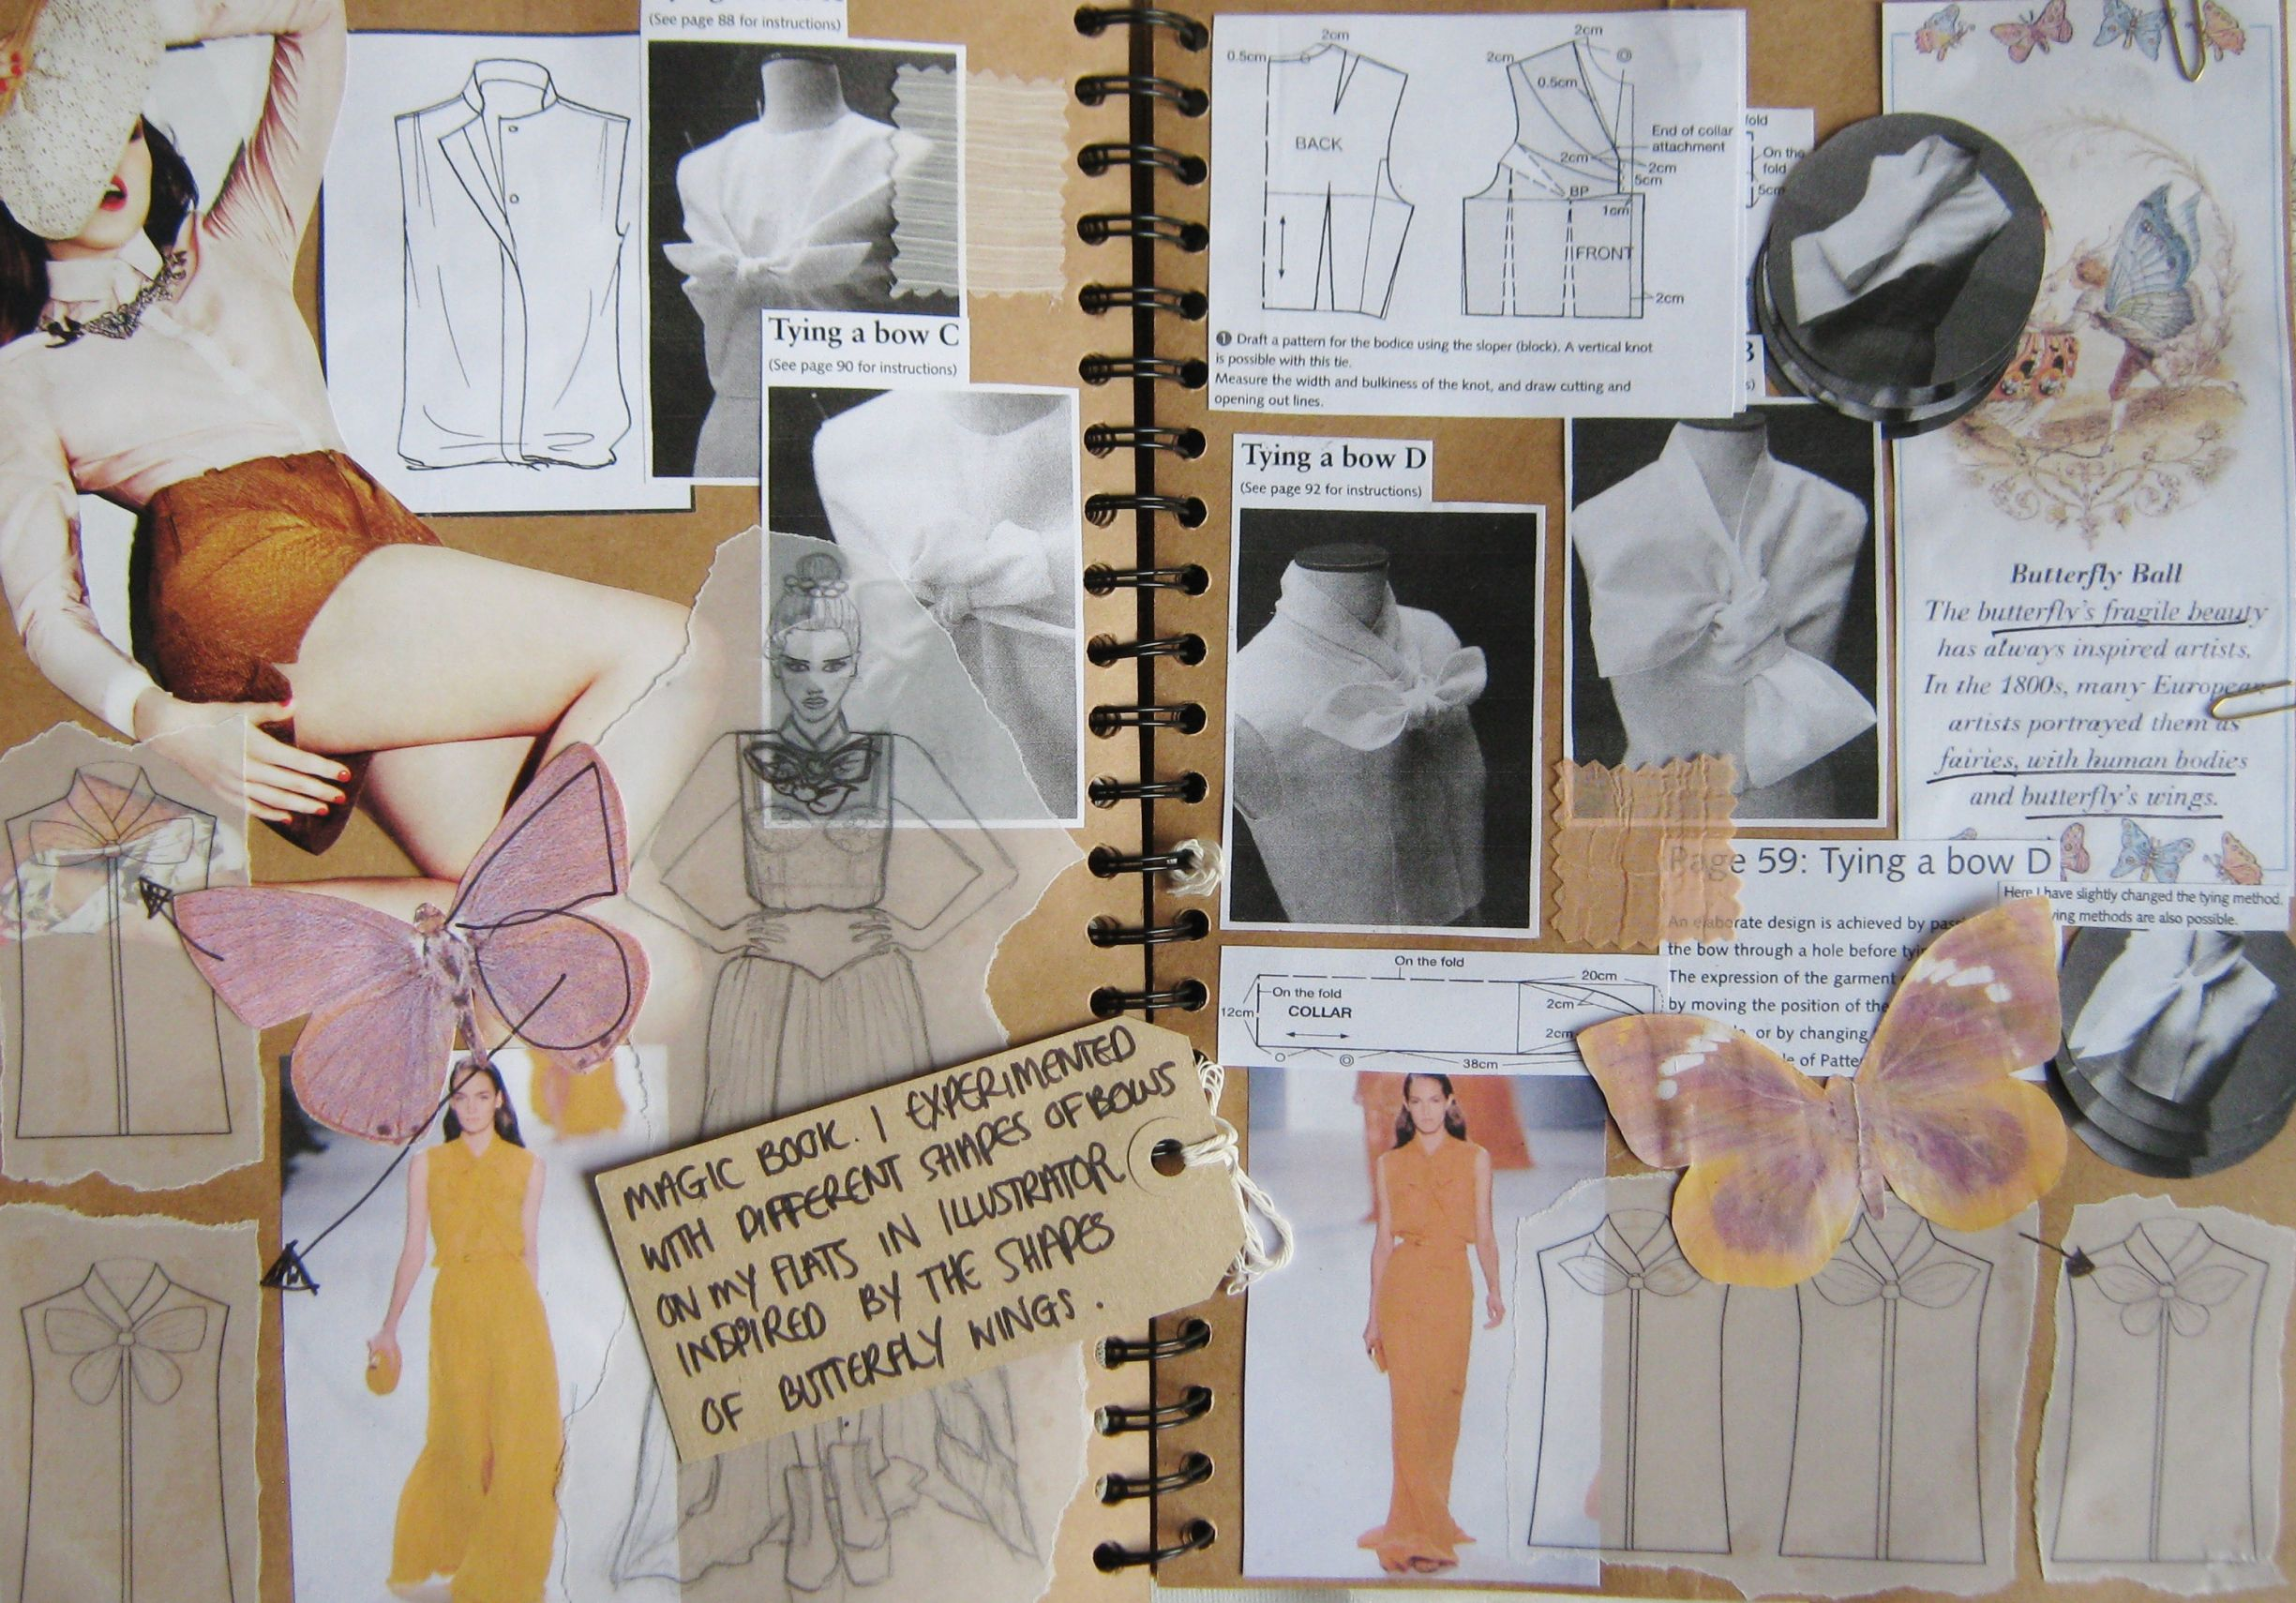 fashion design research papers Suthersanen, uma, function, art and fashion: do we need the eu design law (october 17, 2011) queen mary school of law legal studies research paper.